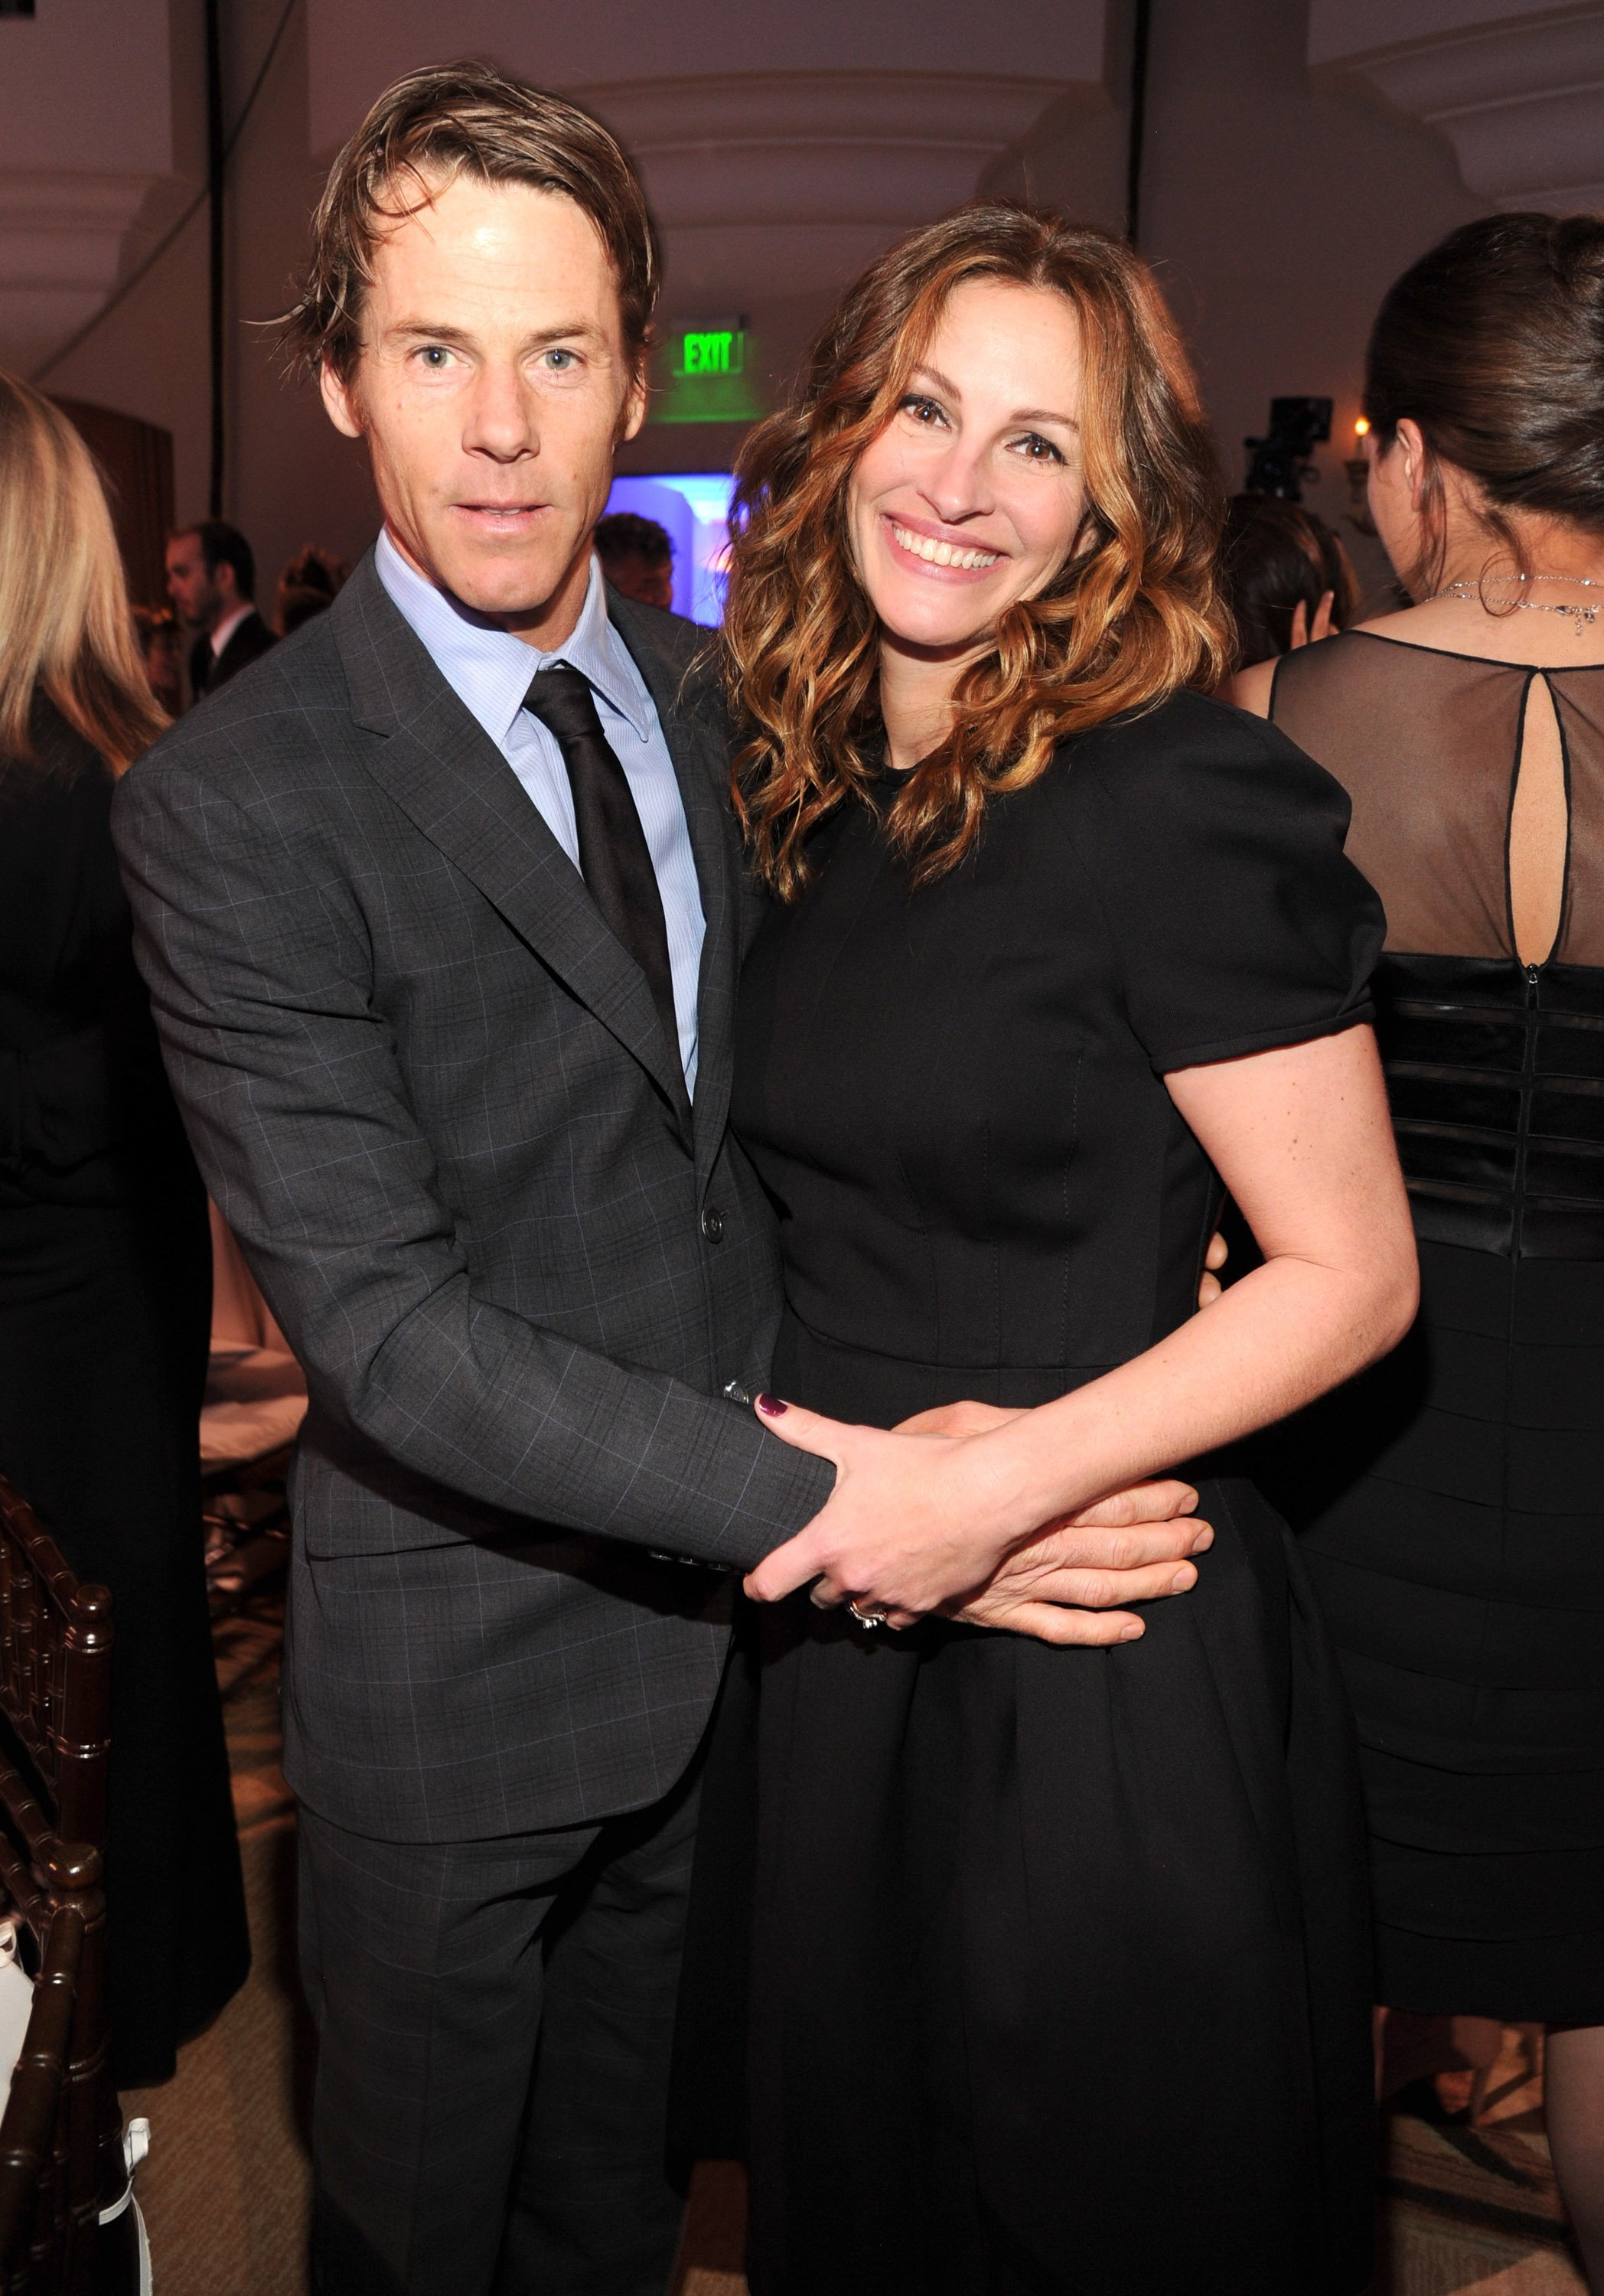 Danny Moder and Julia Roberts attend the 3rd annual Sean Penn & Friends HELP HAITI HOME Gala benefiting J/P HRO presented by Giorgio Armani at Montage Beverly Hills on January 11, 2014, in Beverly Hills, California. | Source: Getty Images.